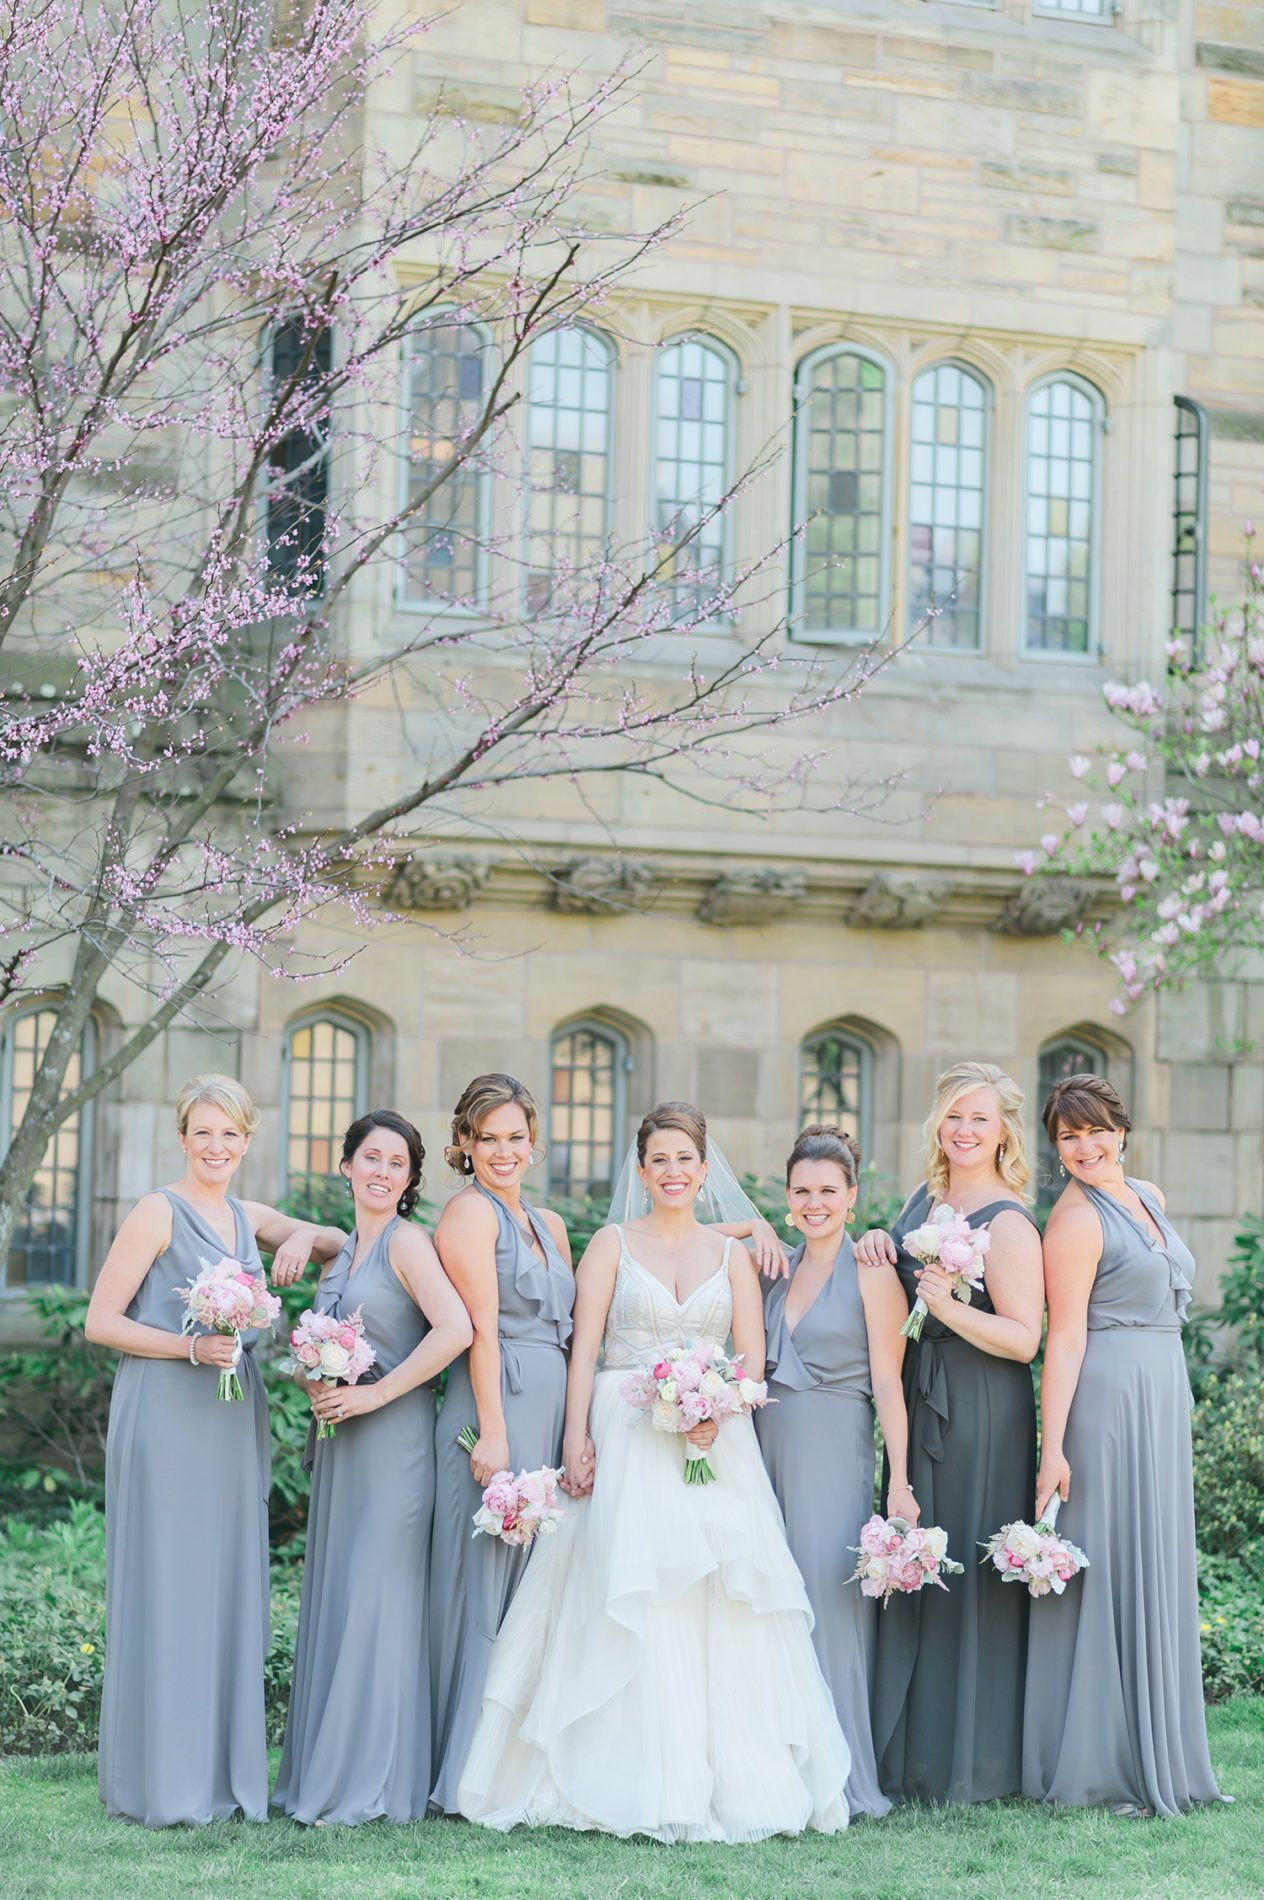 Fashion style Bridesmaid Gray dresses with pink flowers pictures for girls